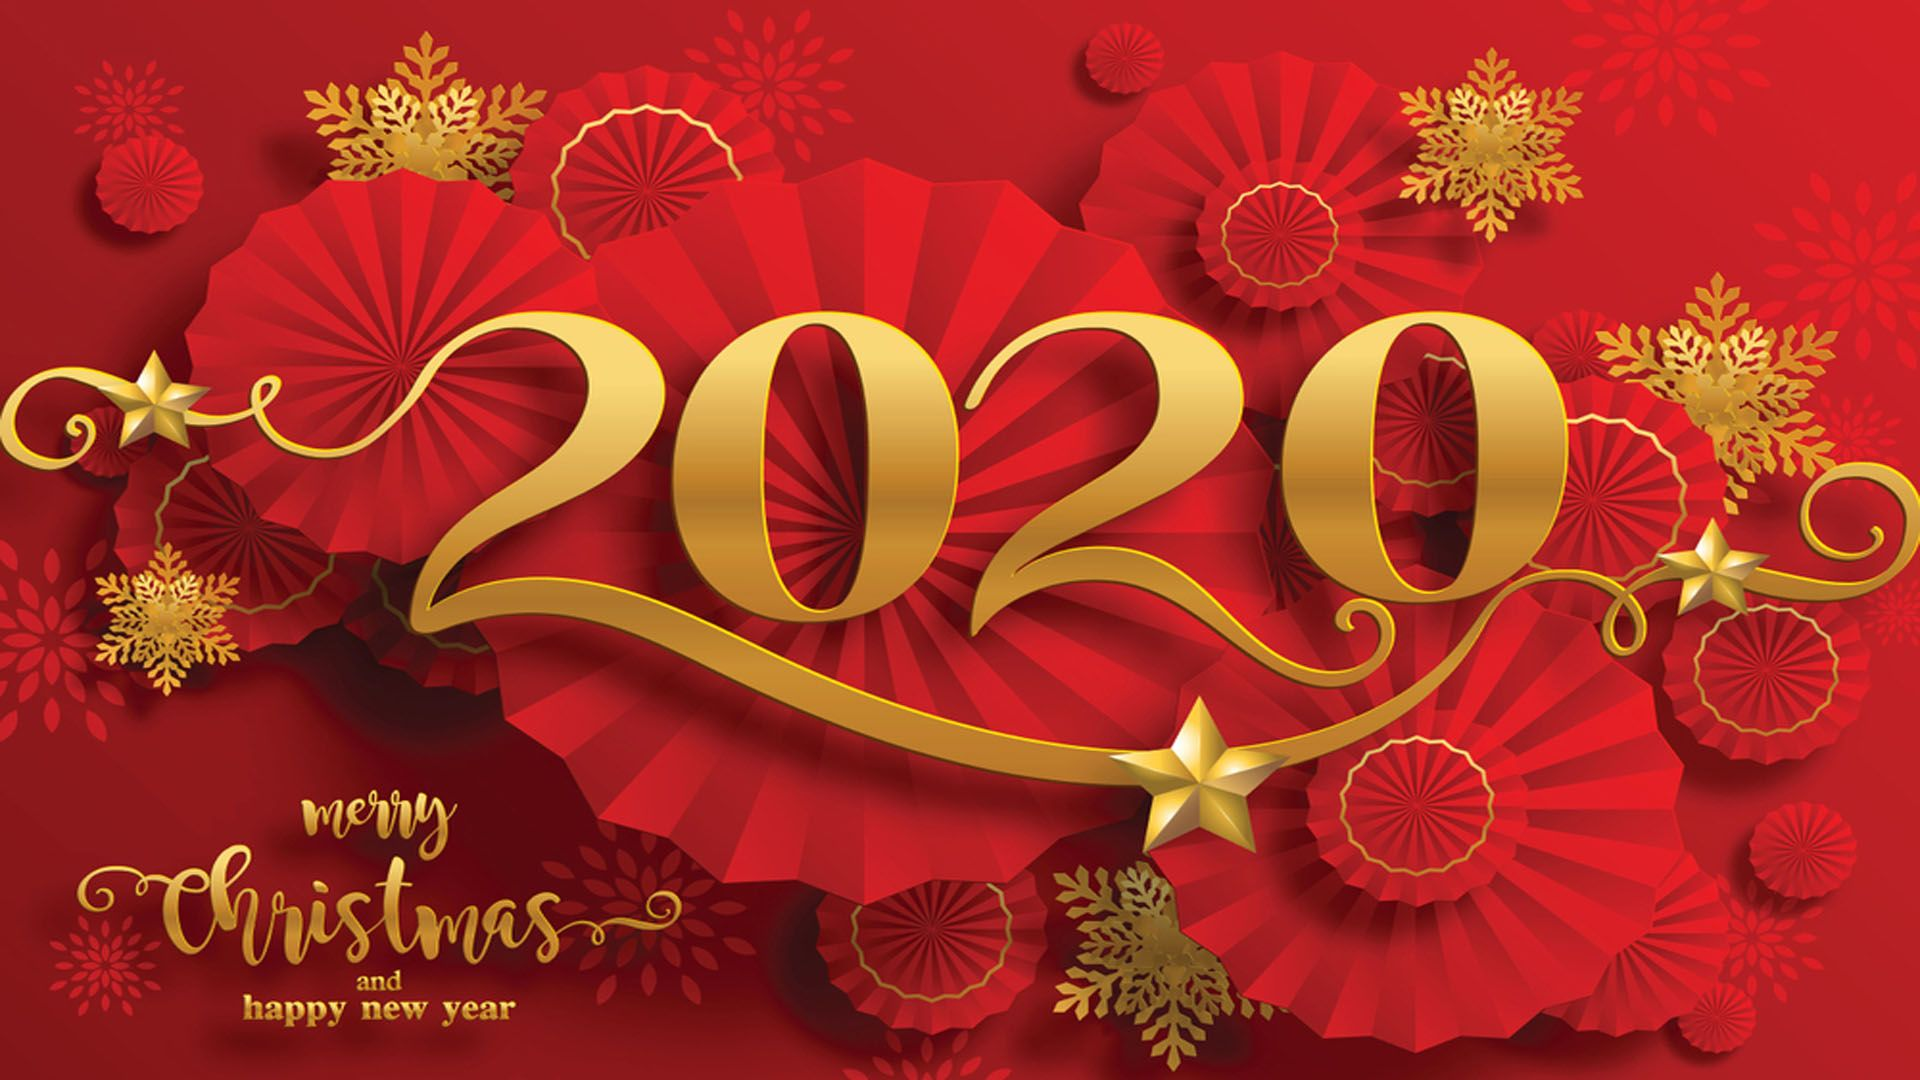 Happy New Year 2020 Free Desktop Wallpaper